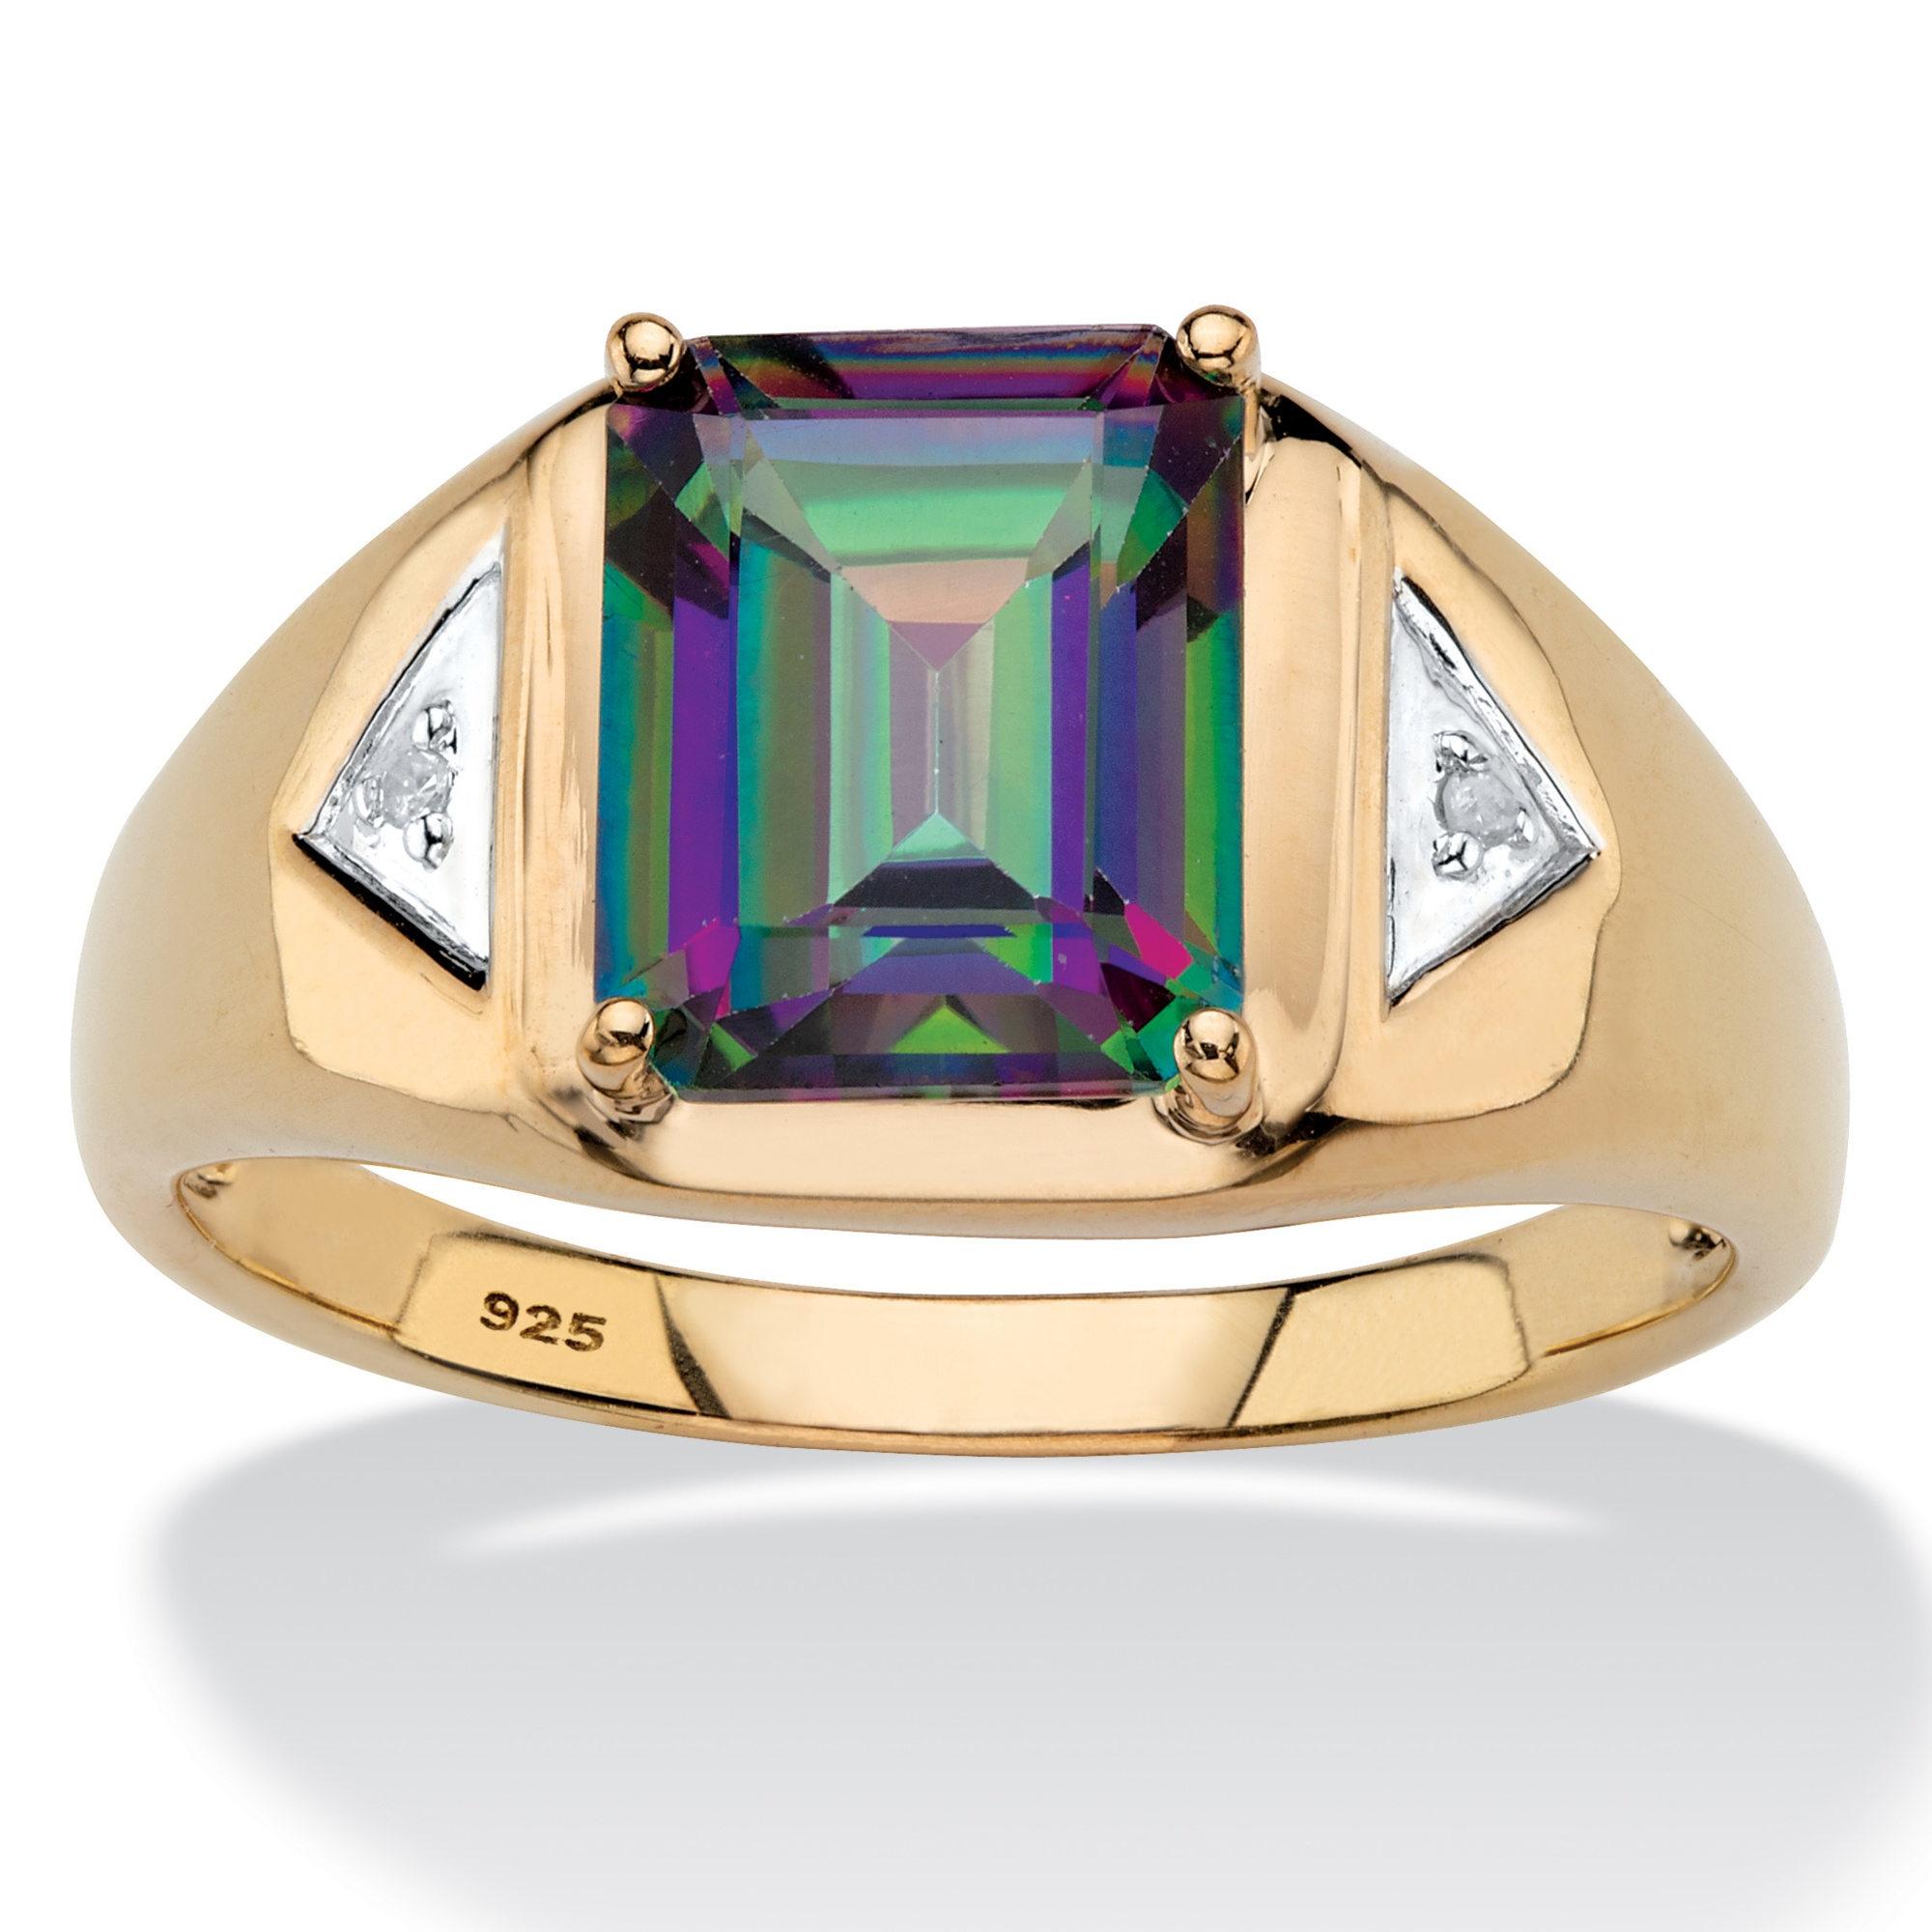 jewelers ring skylight category mens platinum emerald color portfolio archives diamond multi